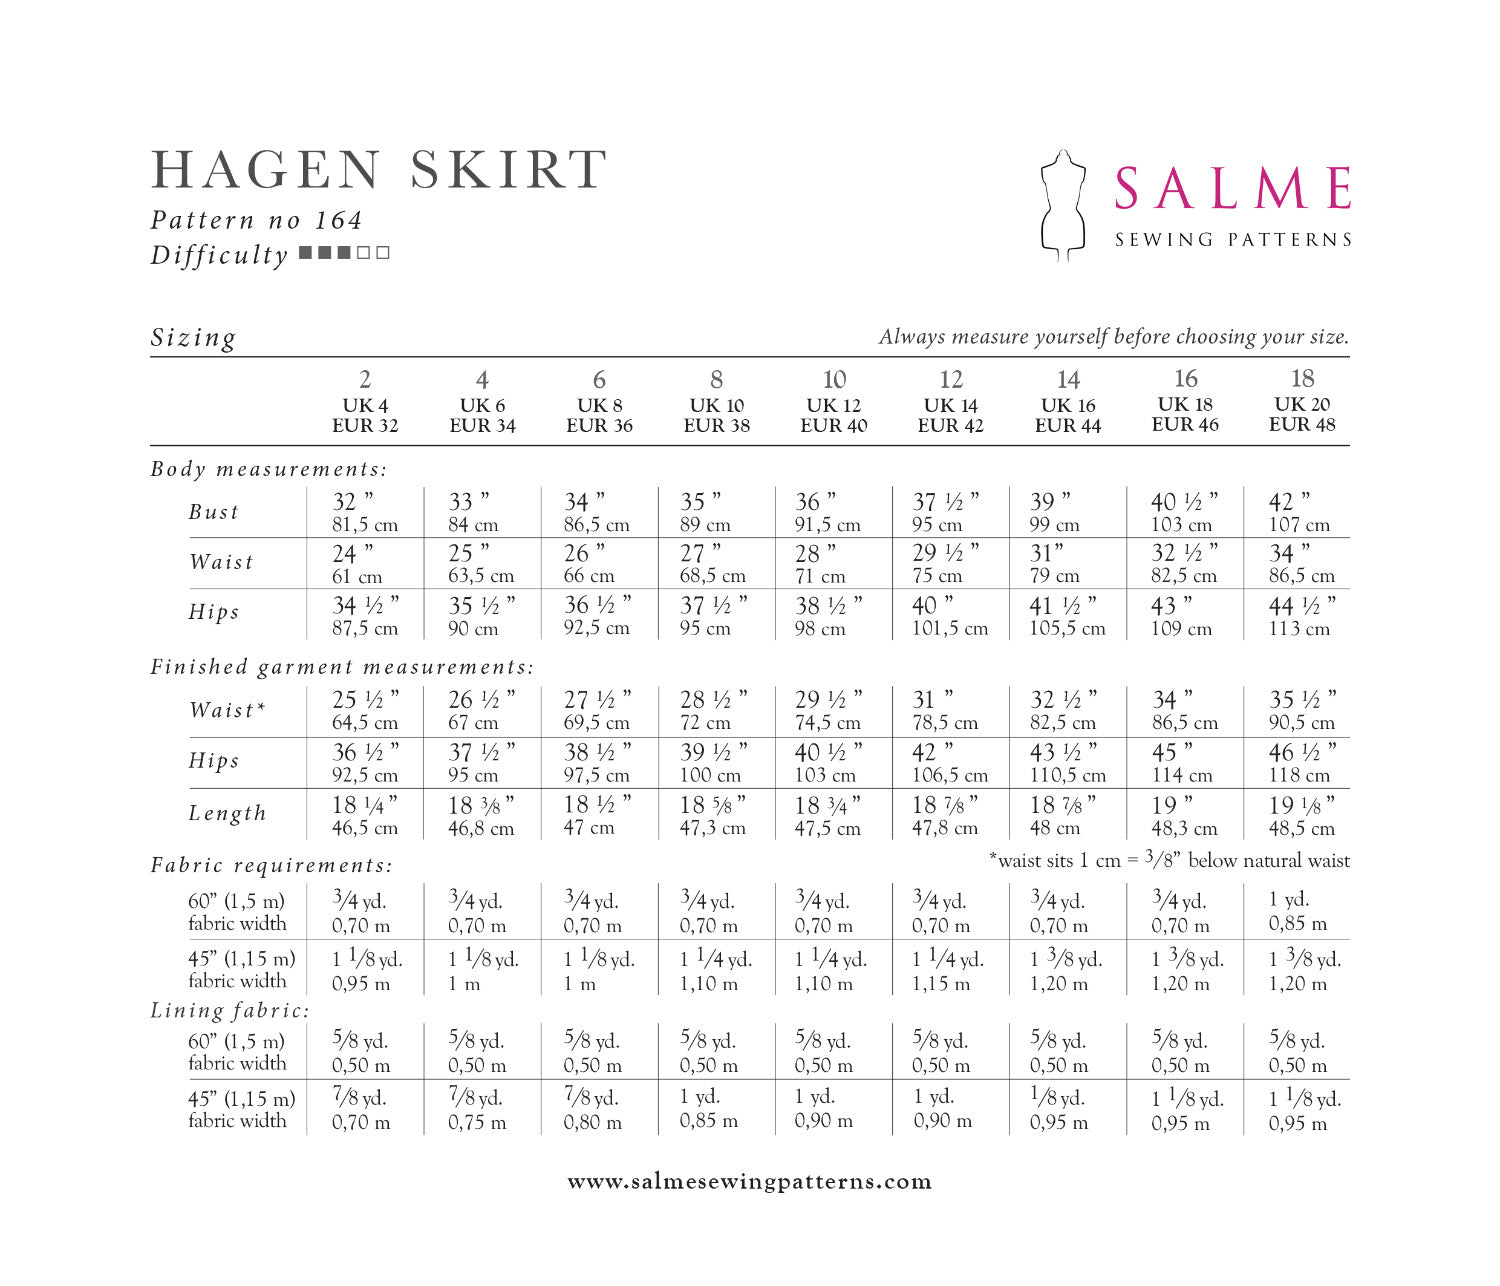 Hagen skirt pattern sizing and measurements